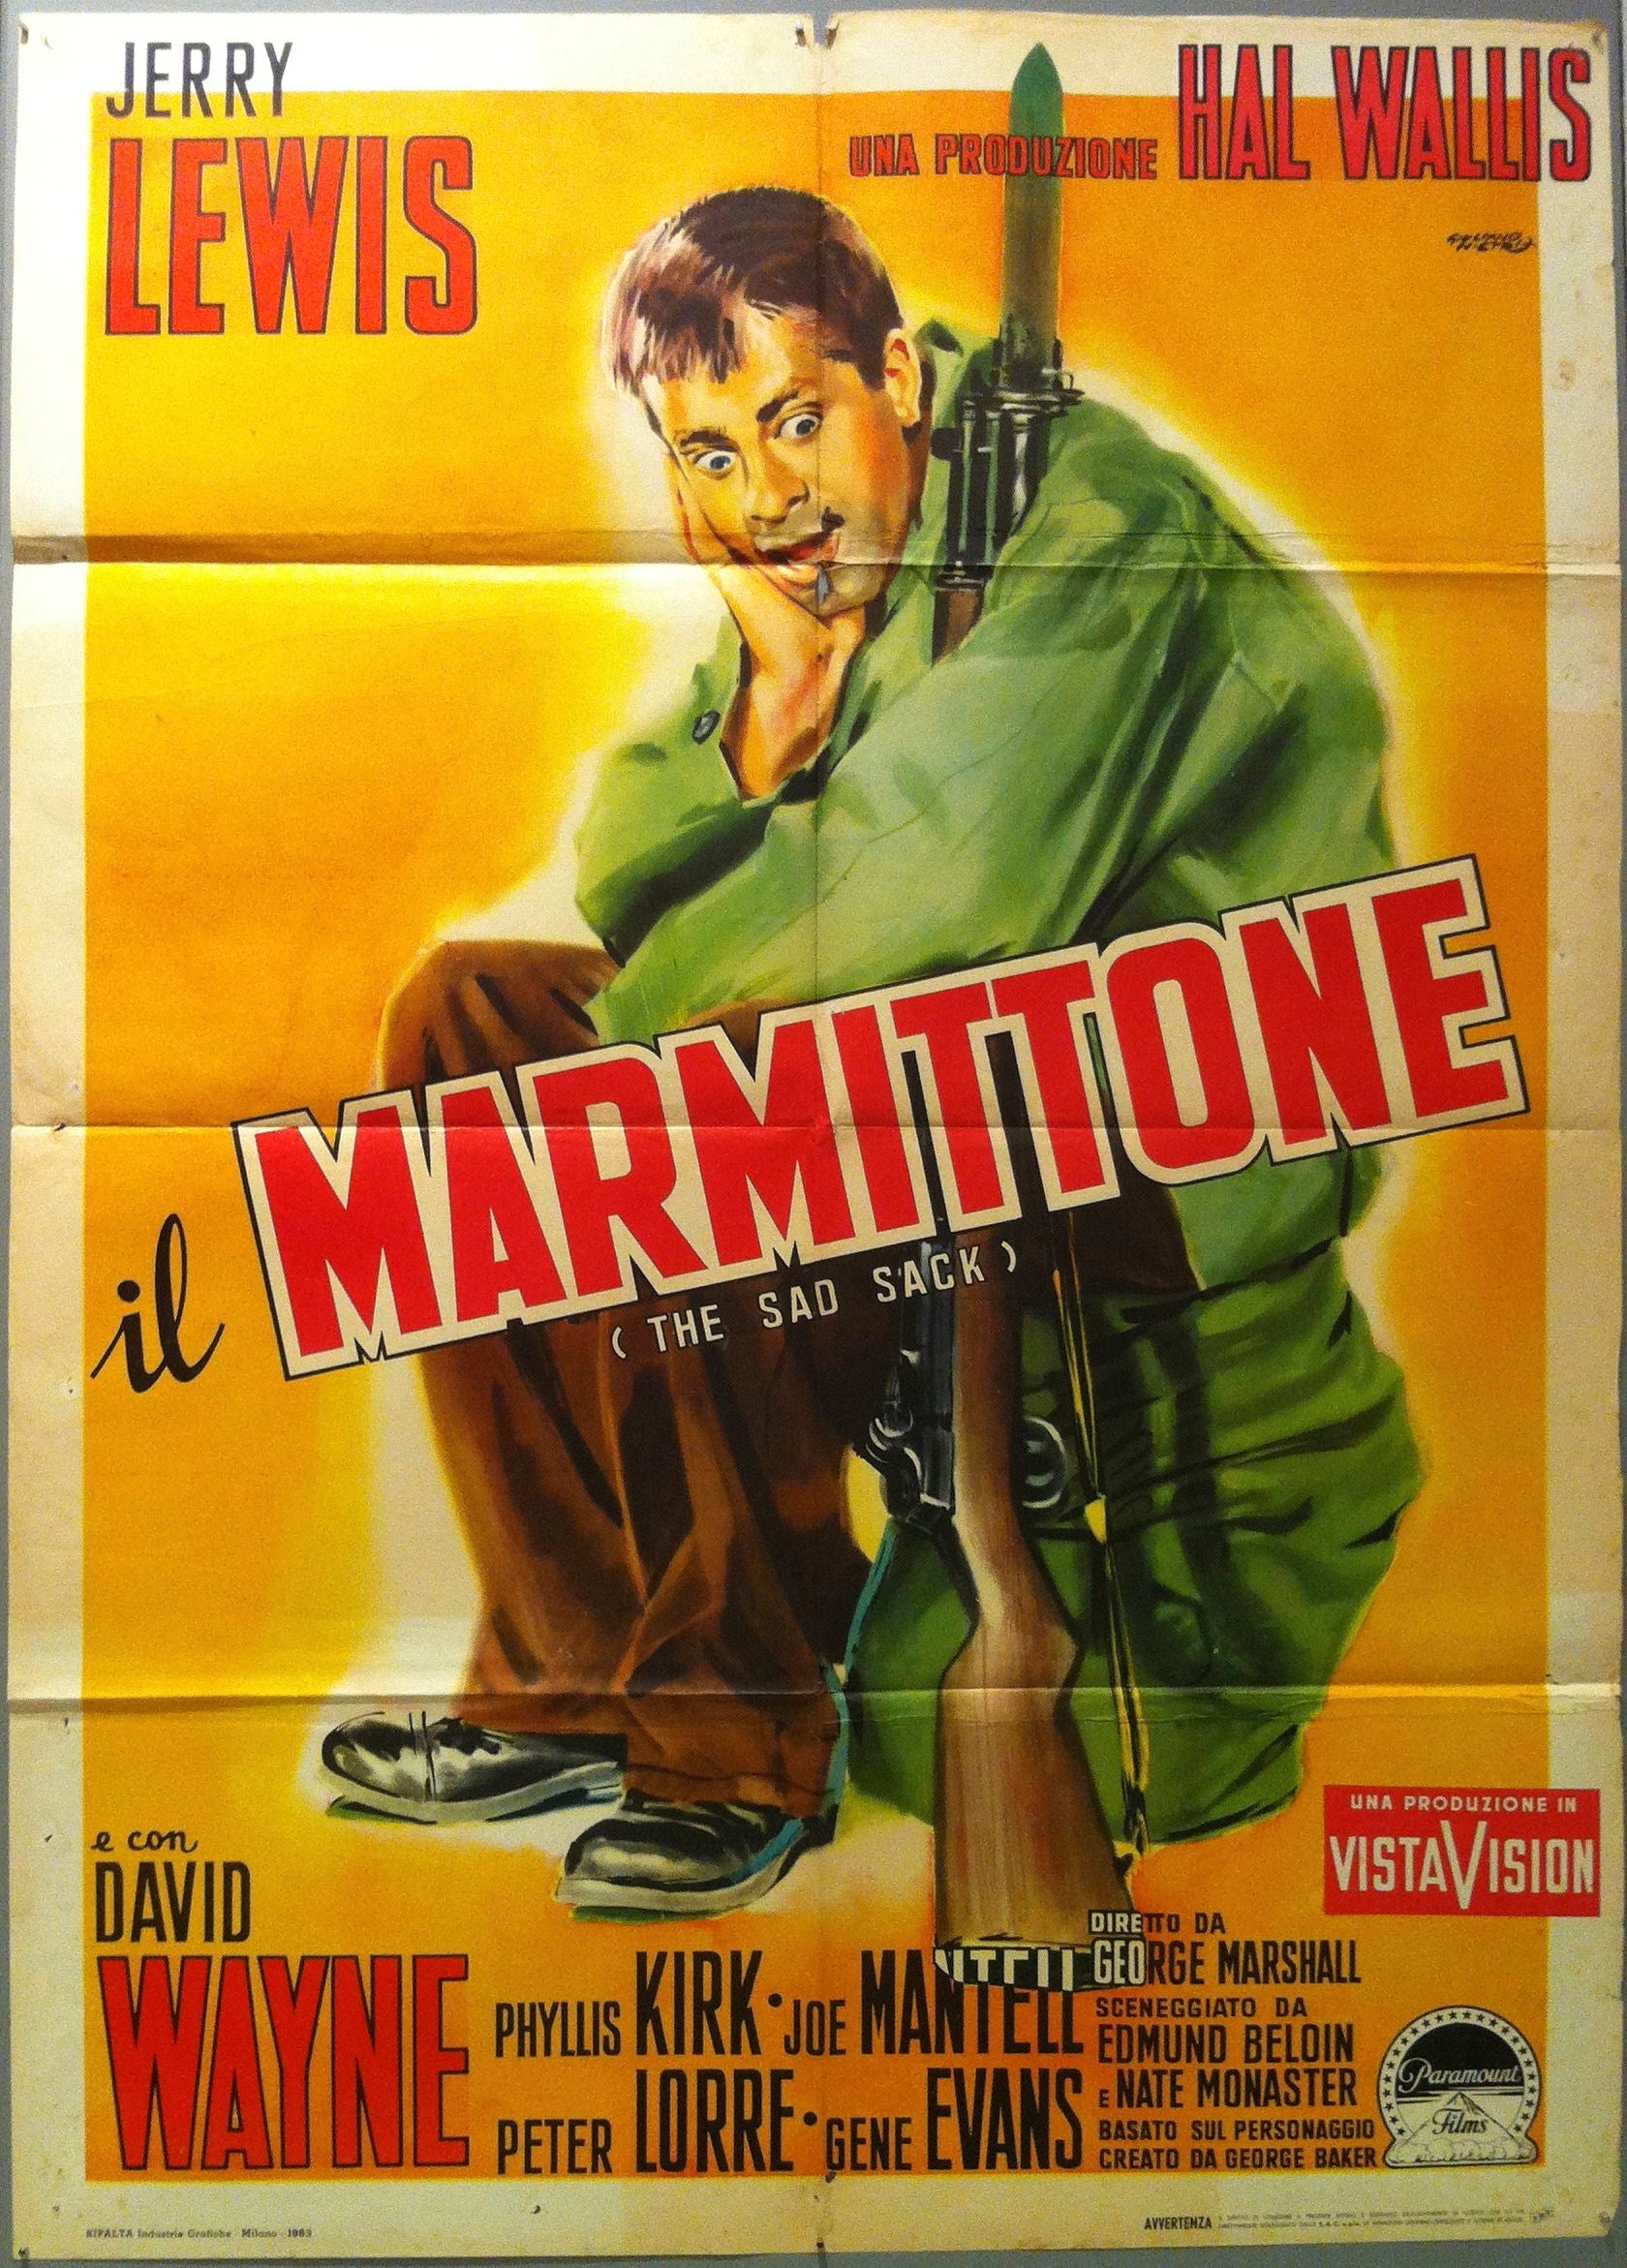 Il Marmittone (The Sad Sack)